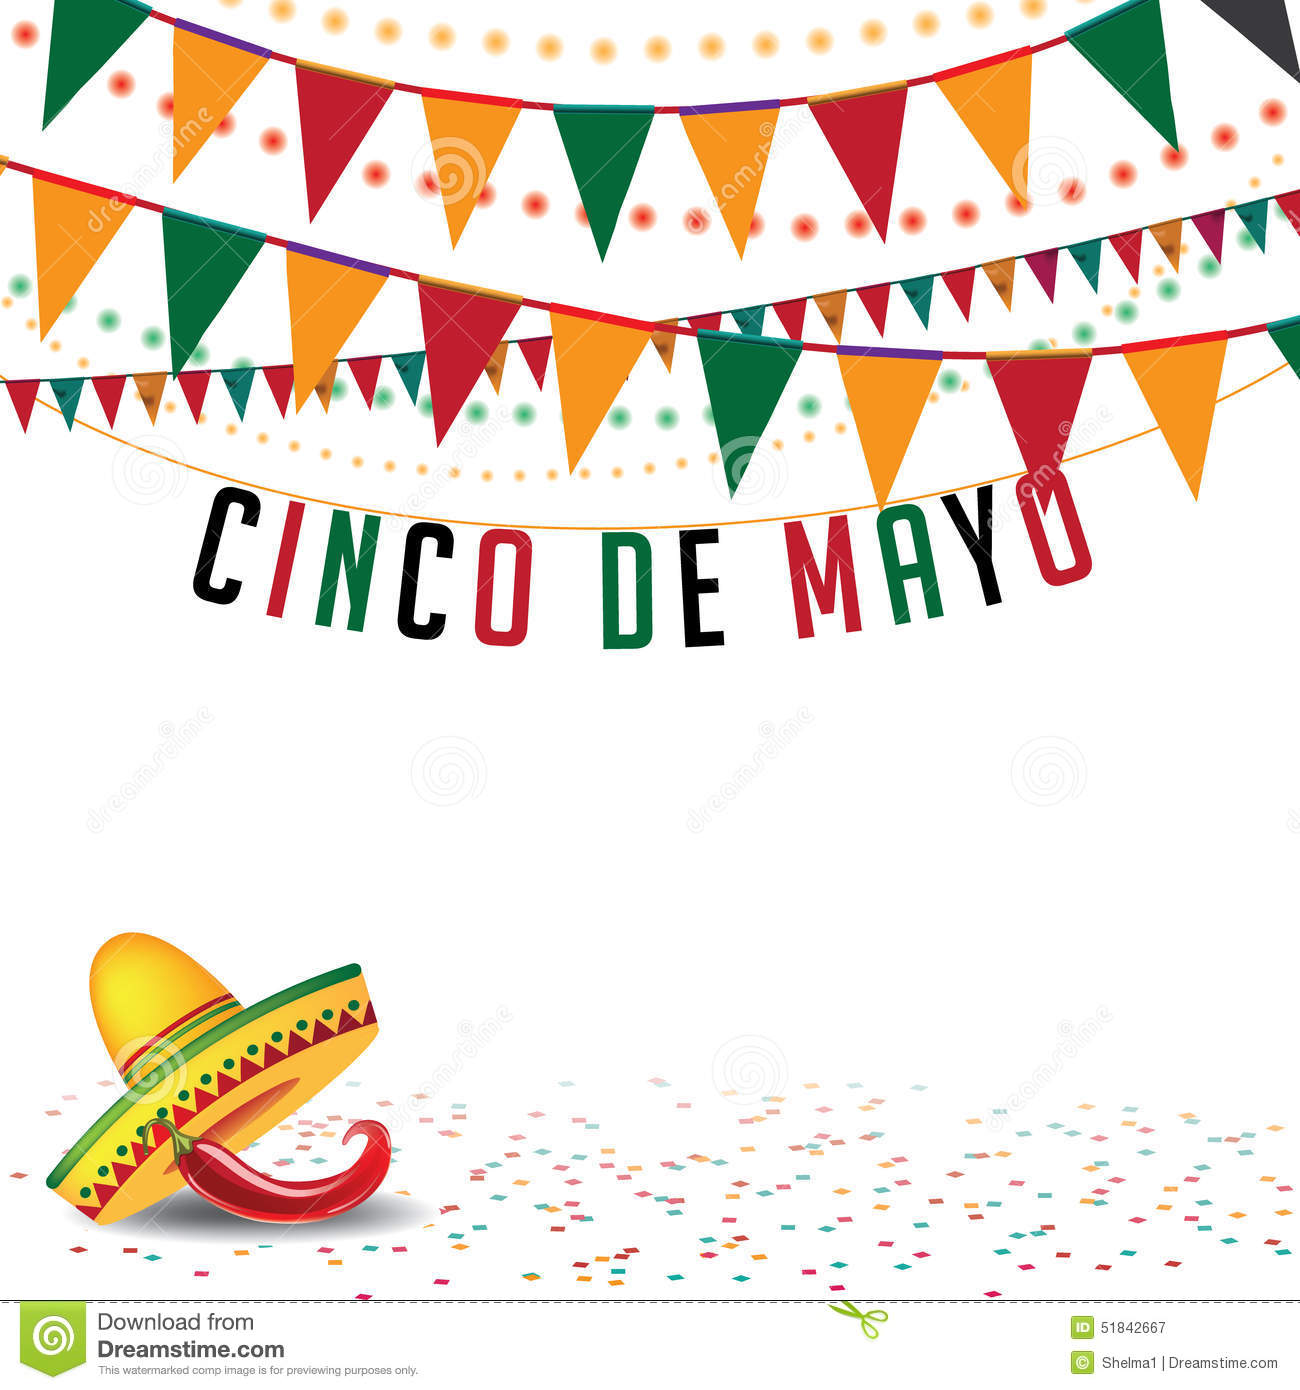 Cinco De Mayo bunting background EPS 10 vector